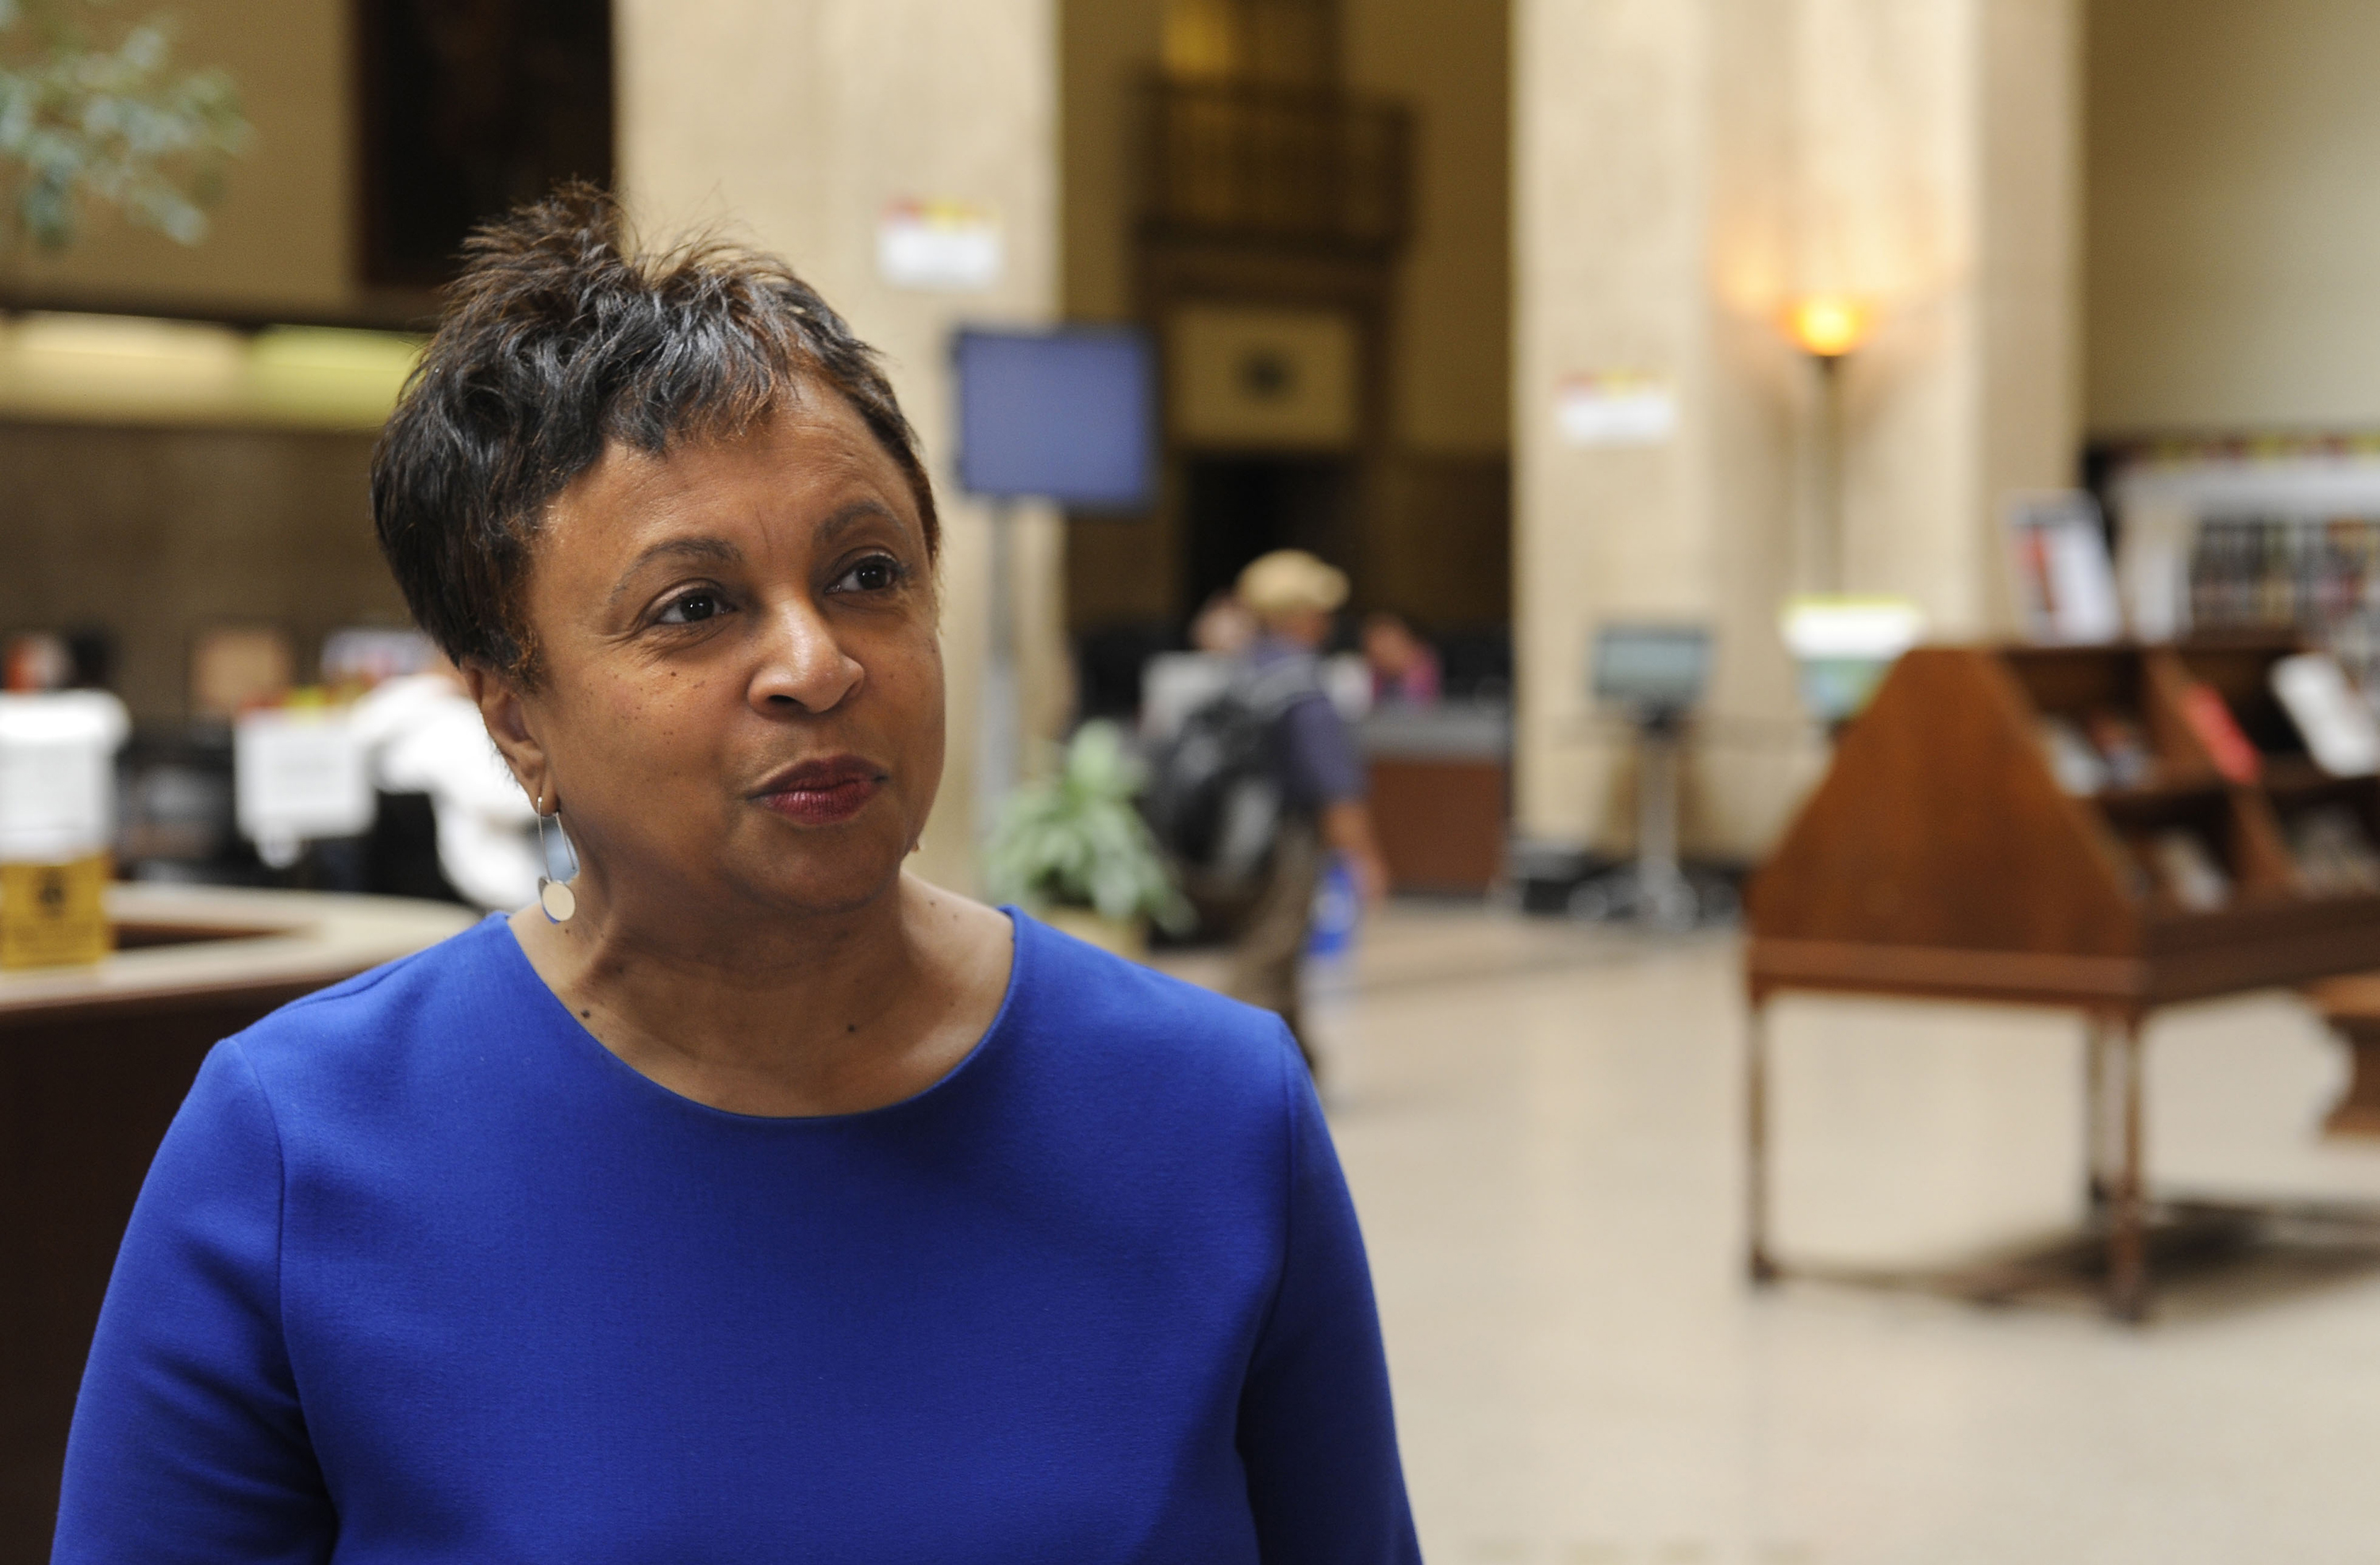 Carla Hayden, in an April 2015 file image, is confirmed by the Senate on Wednesday, July 13, 2016, to head the Library of Congress. Hayden is the longtime leader of Baltimore's library system. (Barbara Haddock Taylor/Baltimore Sun/TNS via Getty Images)